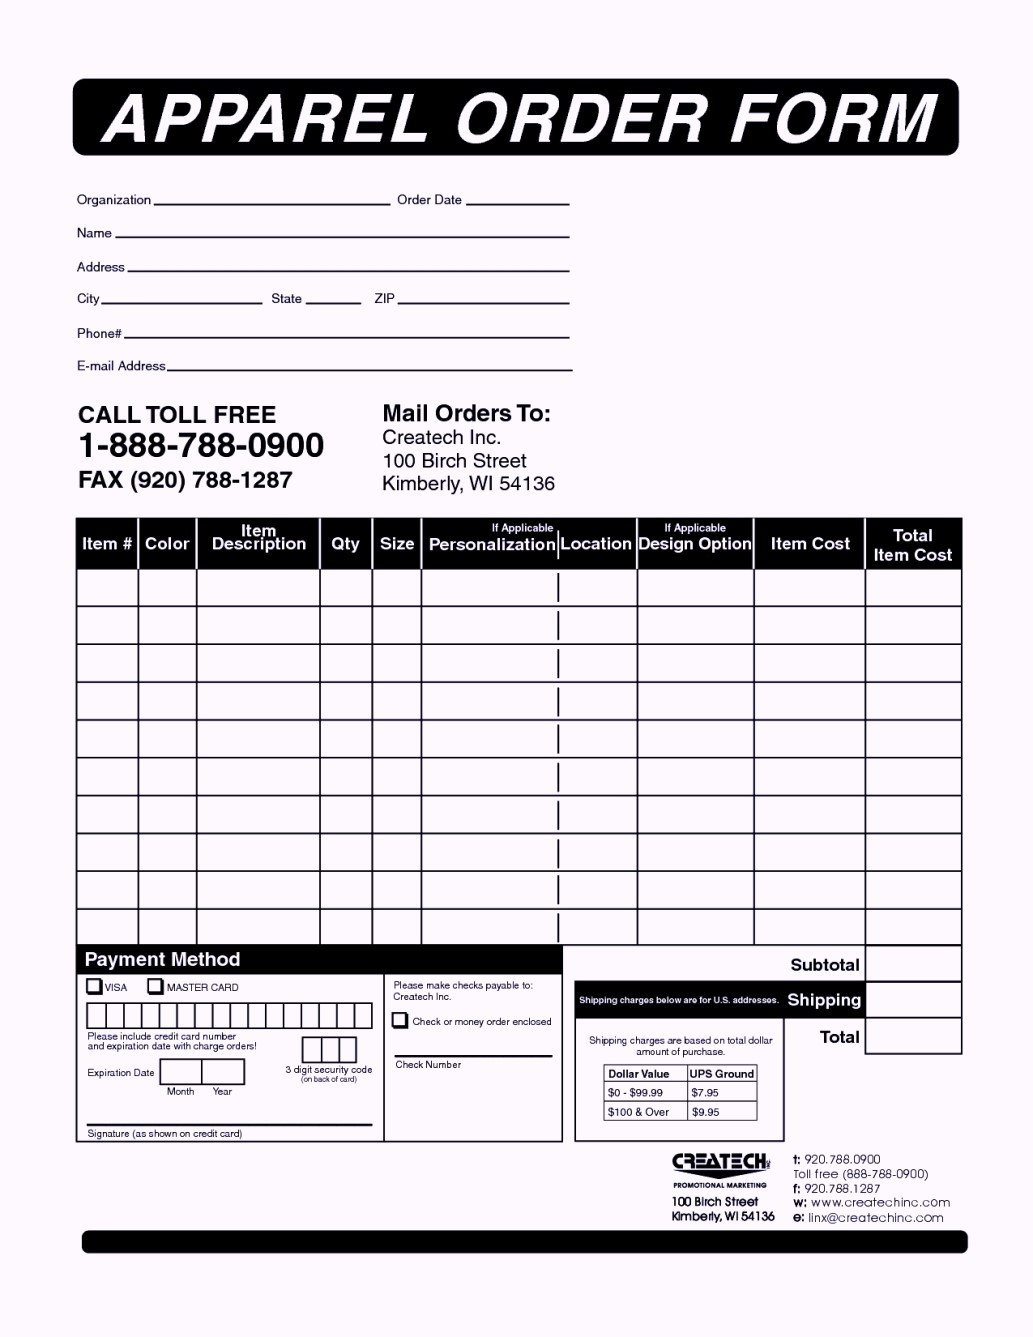 Apparel order form Template Clothing order form Templates Template Update234